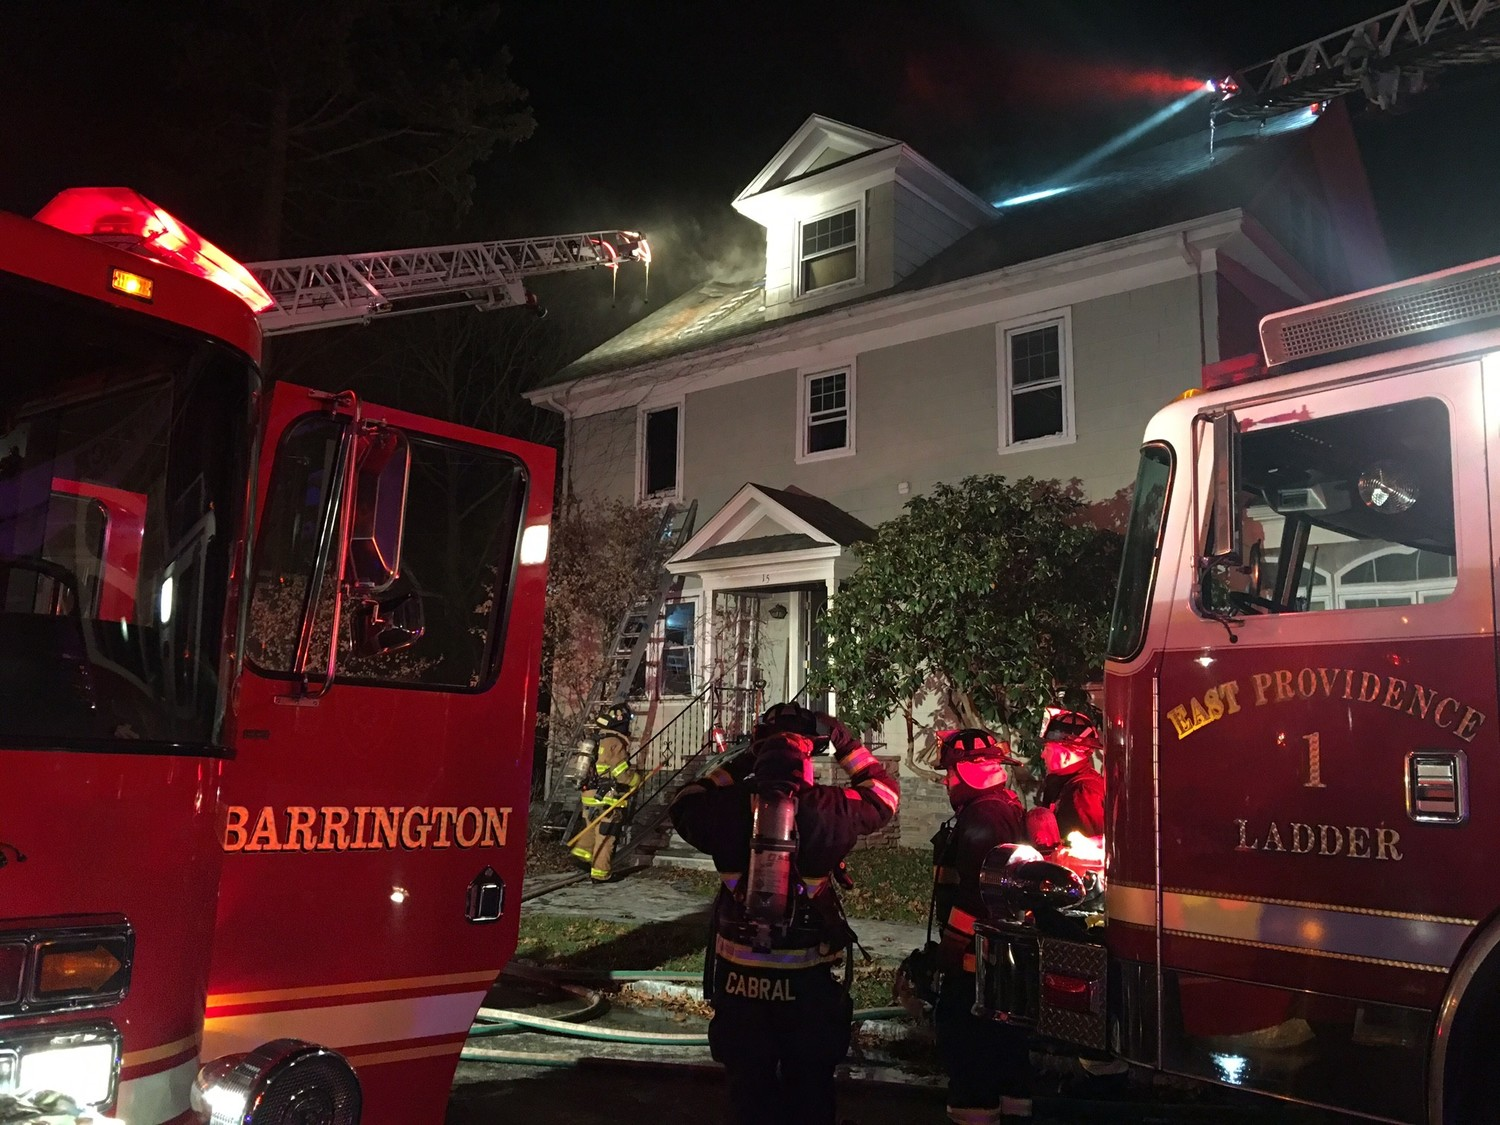 Firefighters work to extinguish a fire that broke out in a Bowden Avenue home in Barrington Wednesday night.